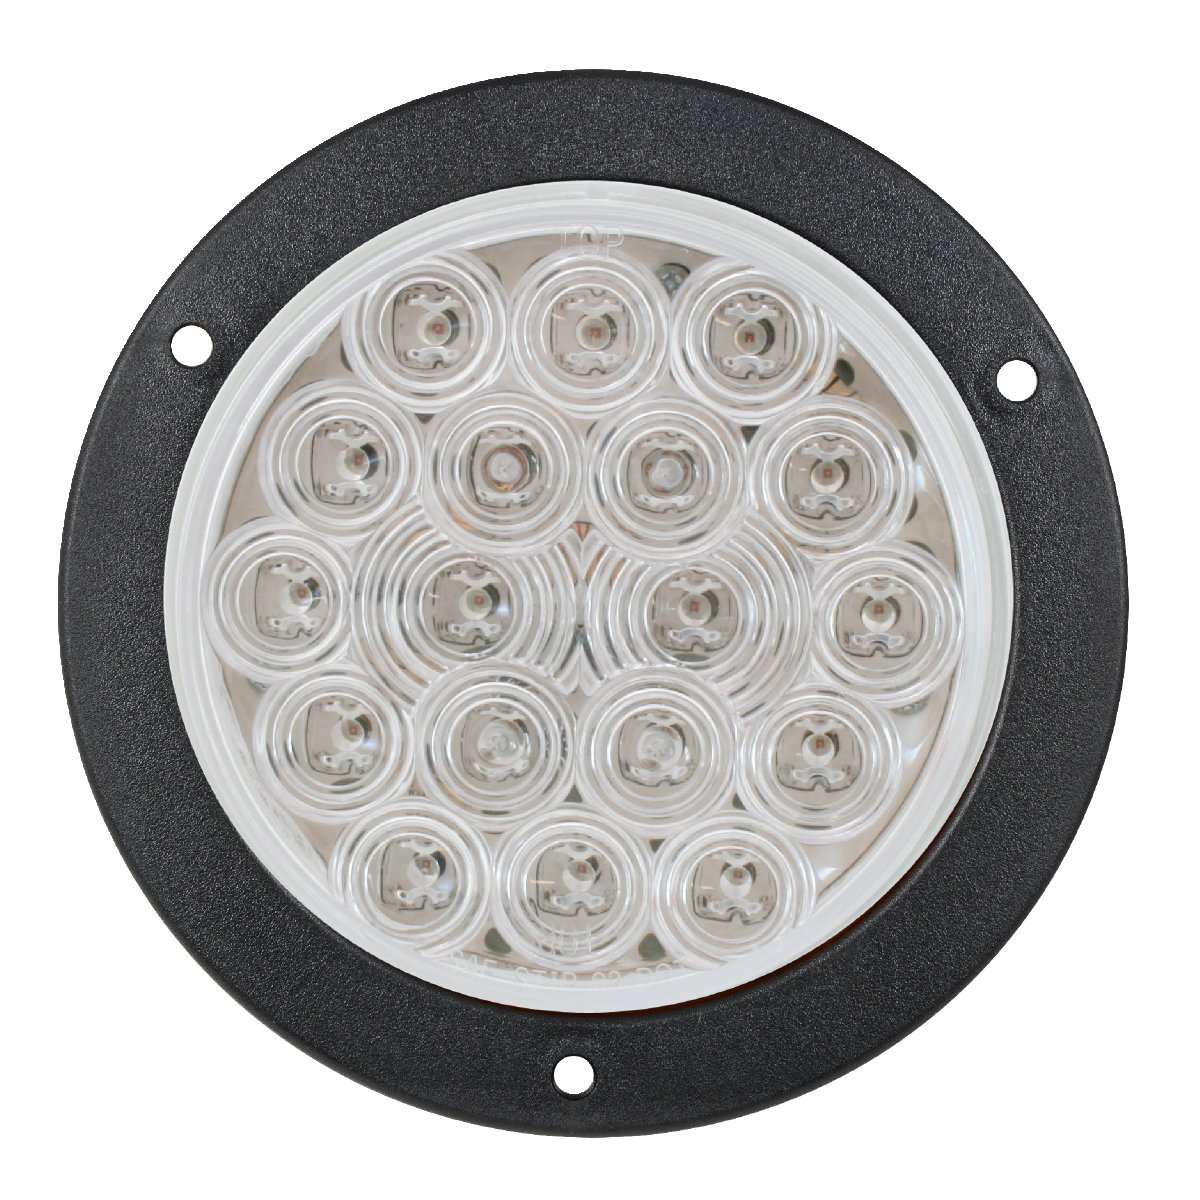 """Grand General 78222BP Pearl 6/"""" White Oval LED Backup Light Includes Light, Grommet and Pigtail for Trucks, Trailers, RVs, Buses, Utility Vehicles"""